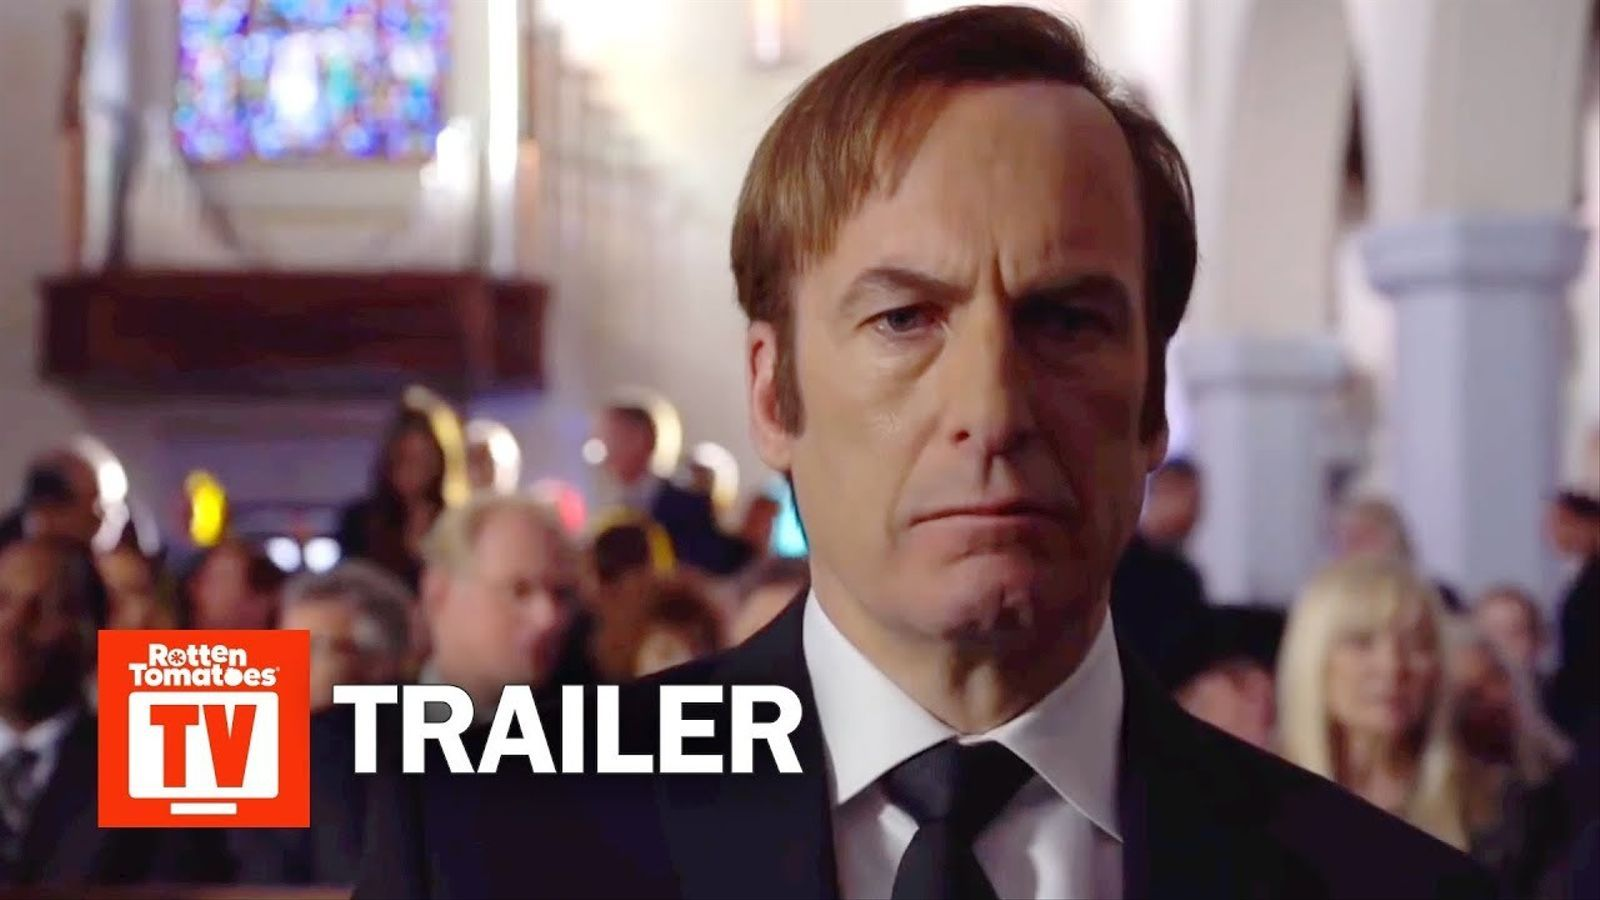 Tràiler de la temporada 4 'Better call Saul'